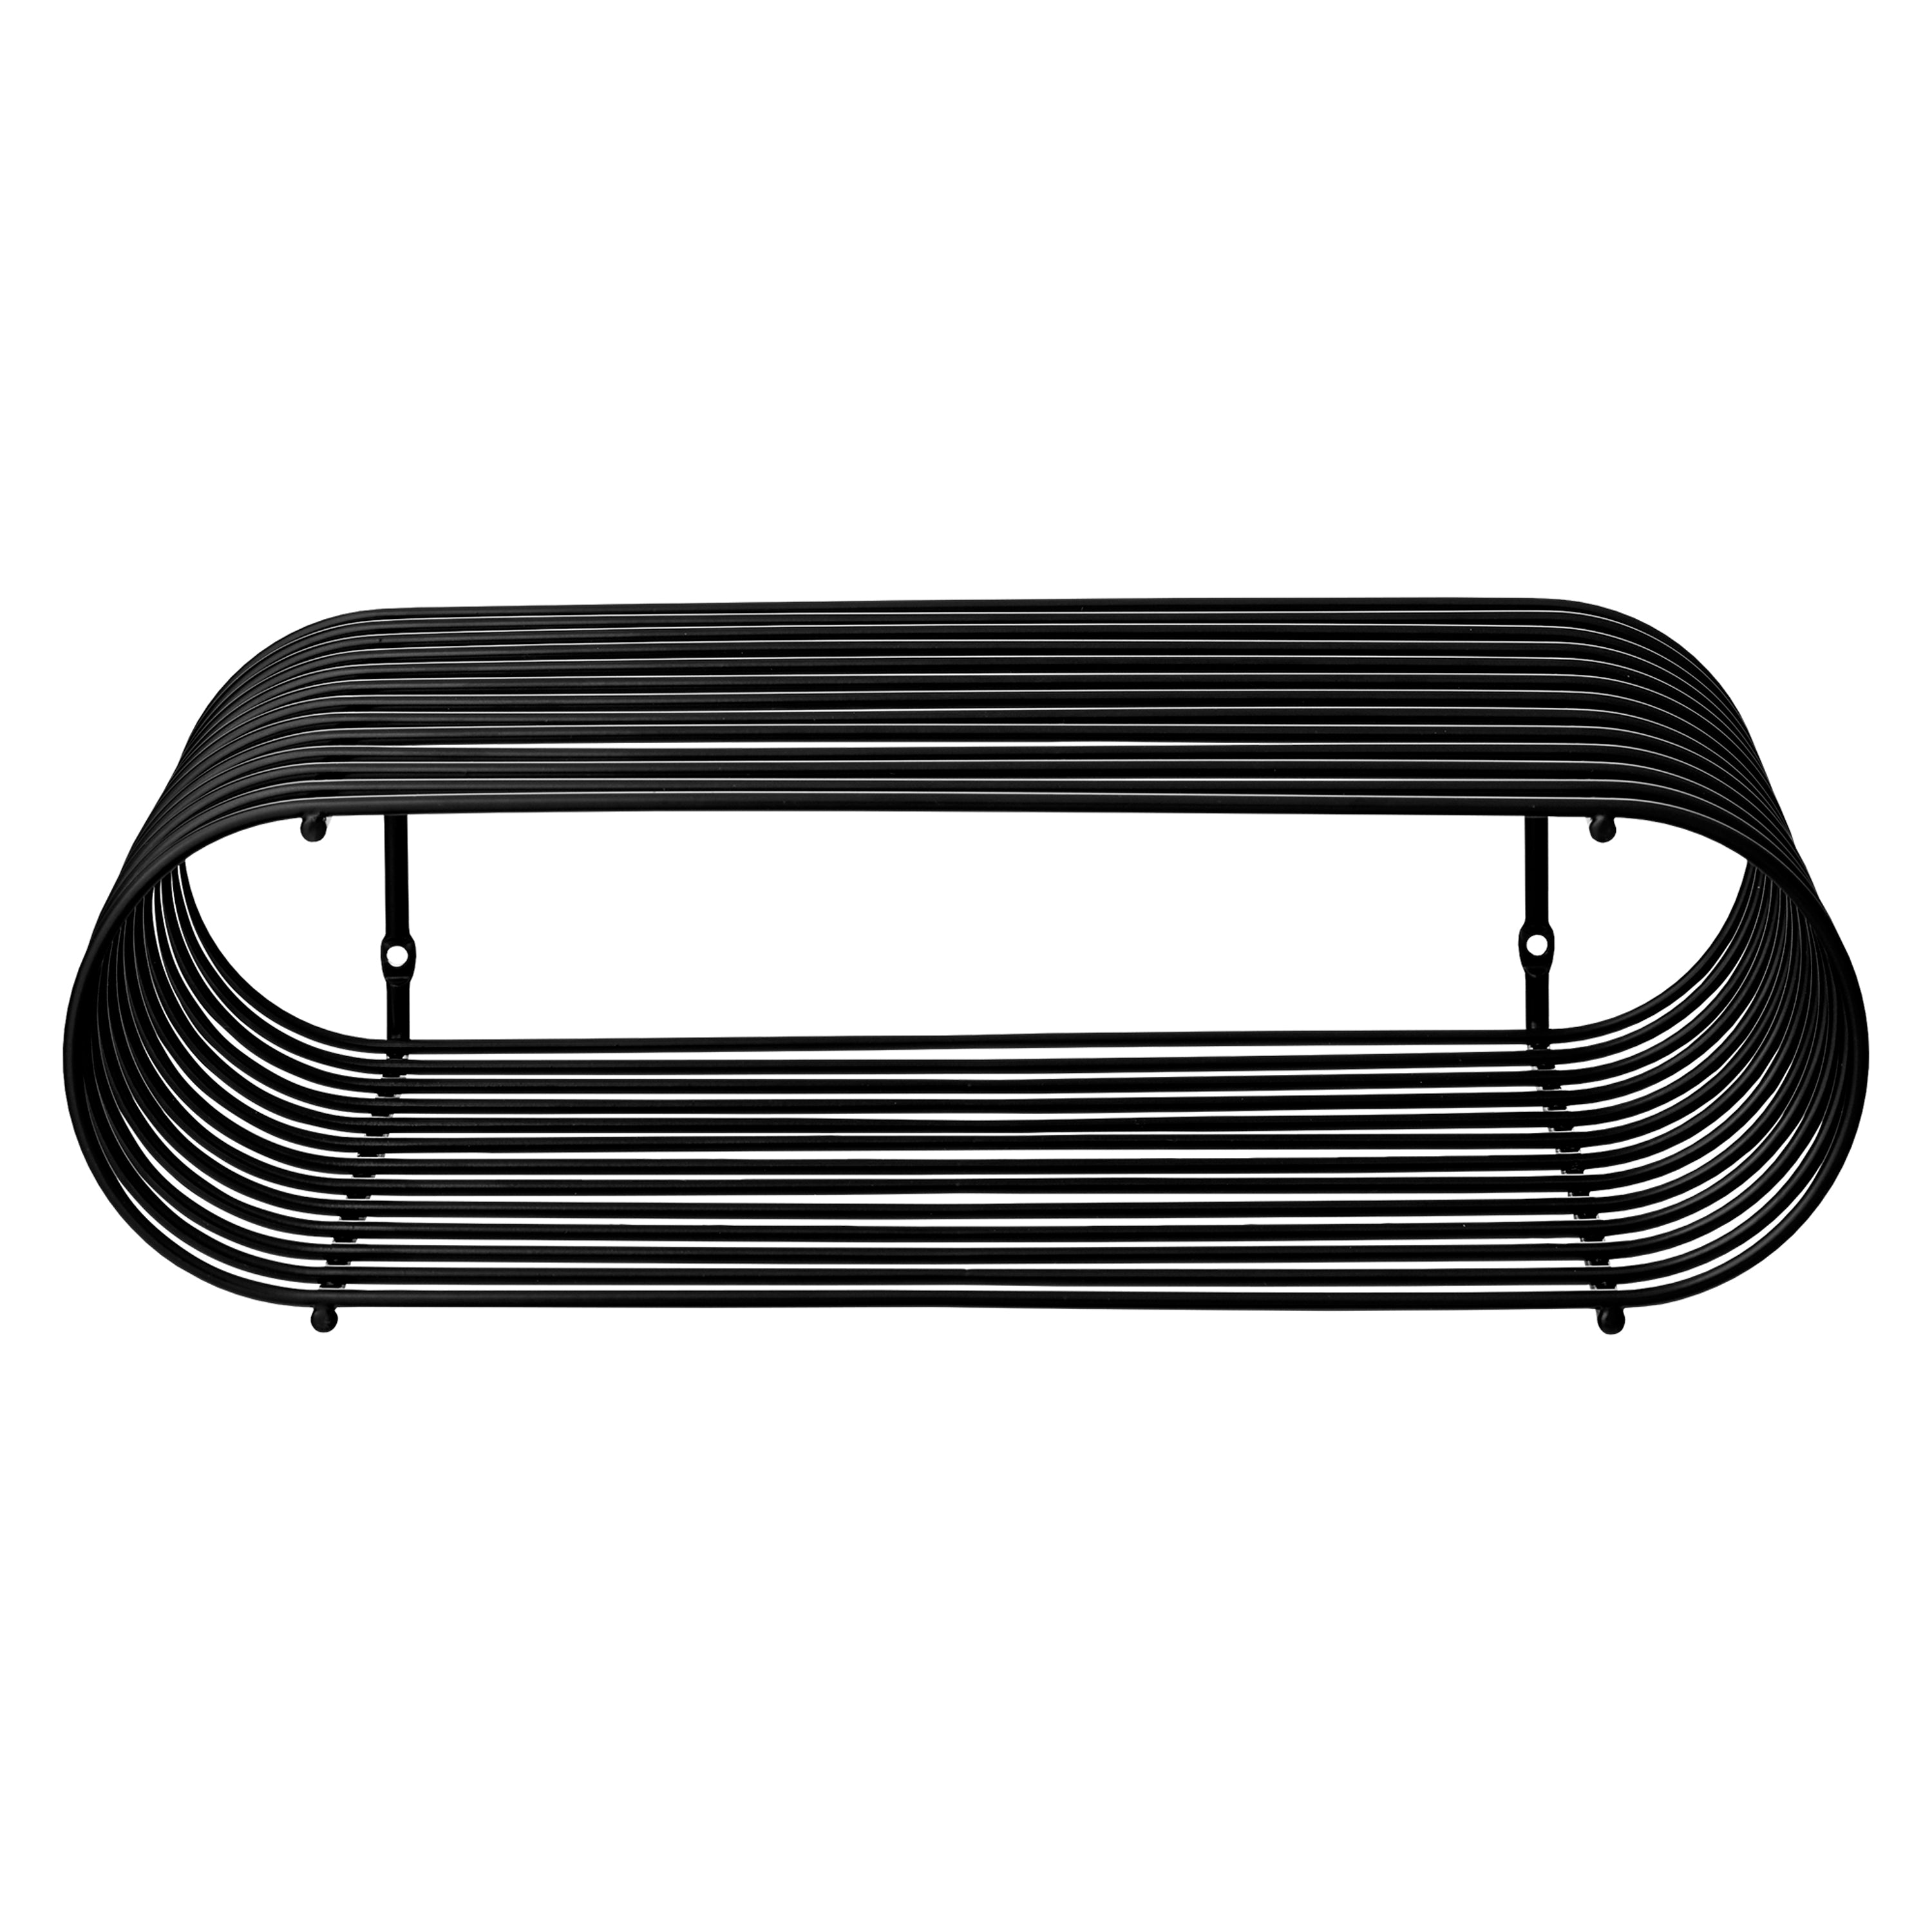 CURVA shelf black, one size fra AYTM